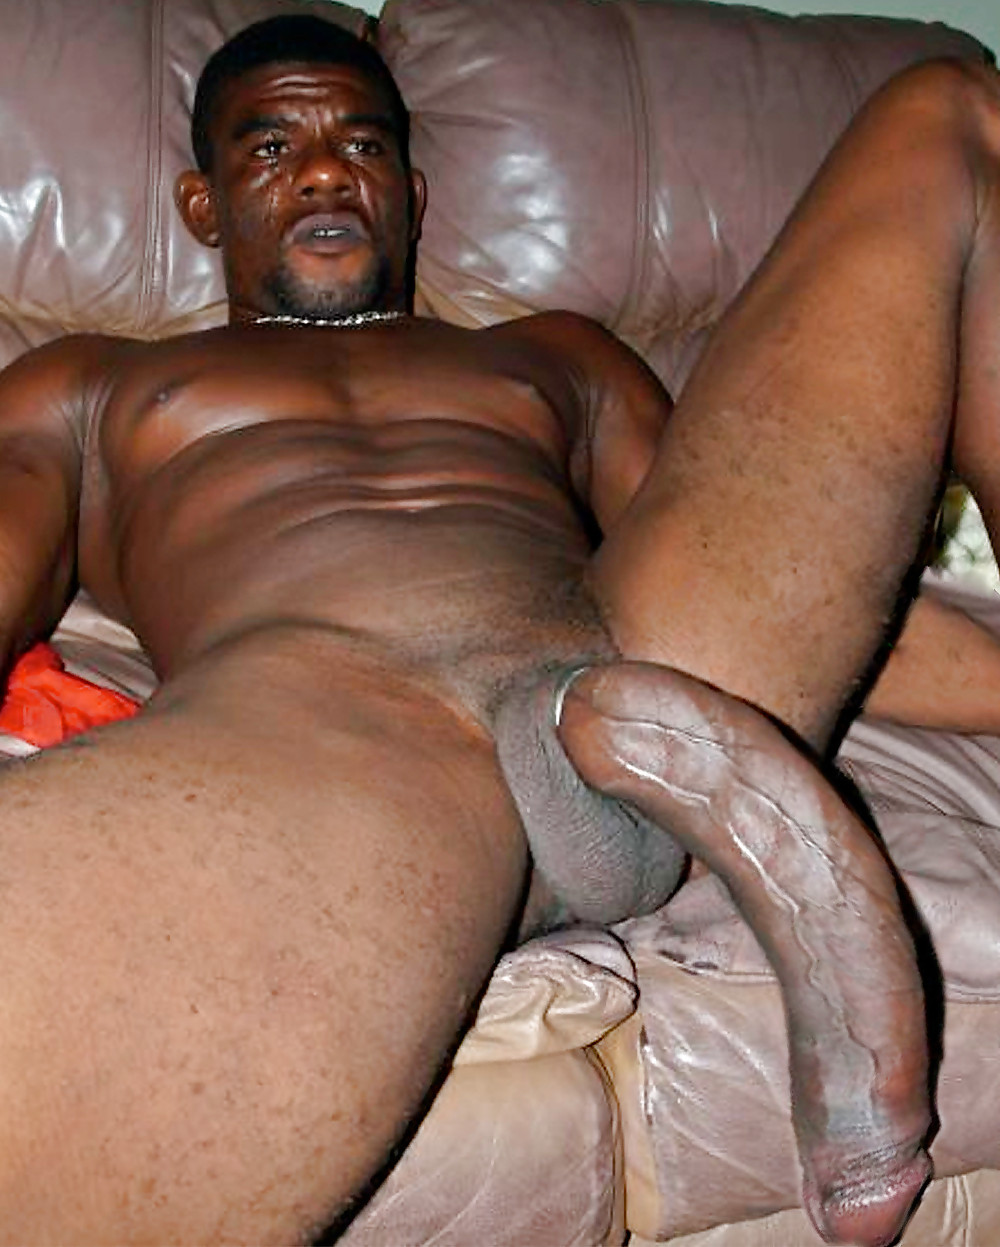 negros gay follando jovenes masturbandose